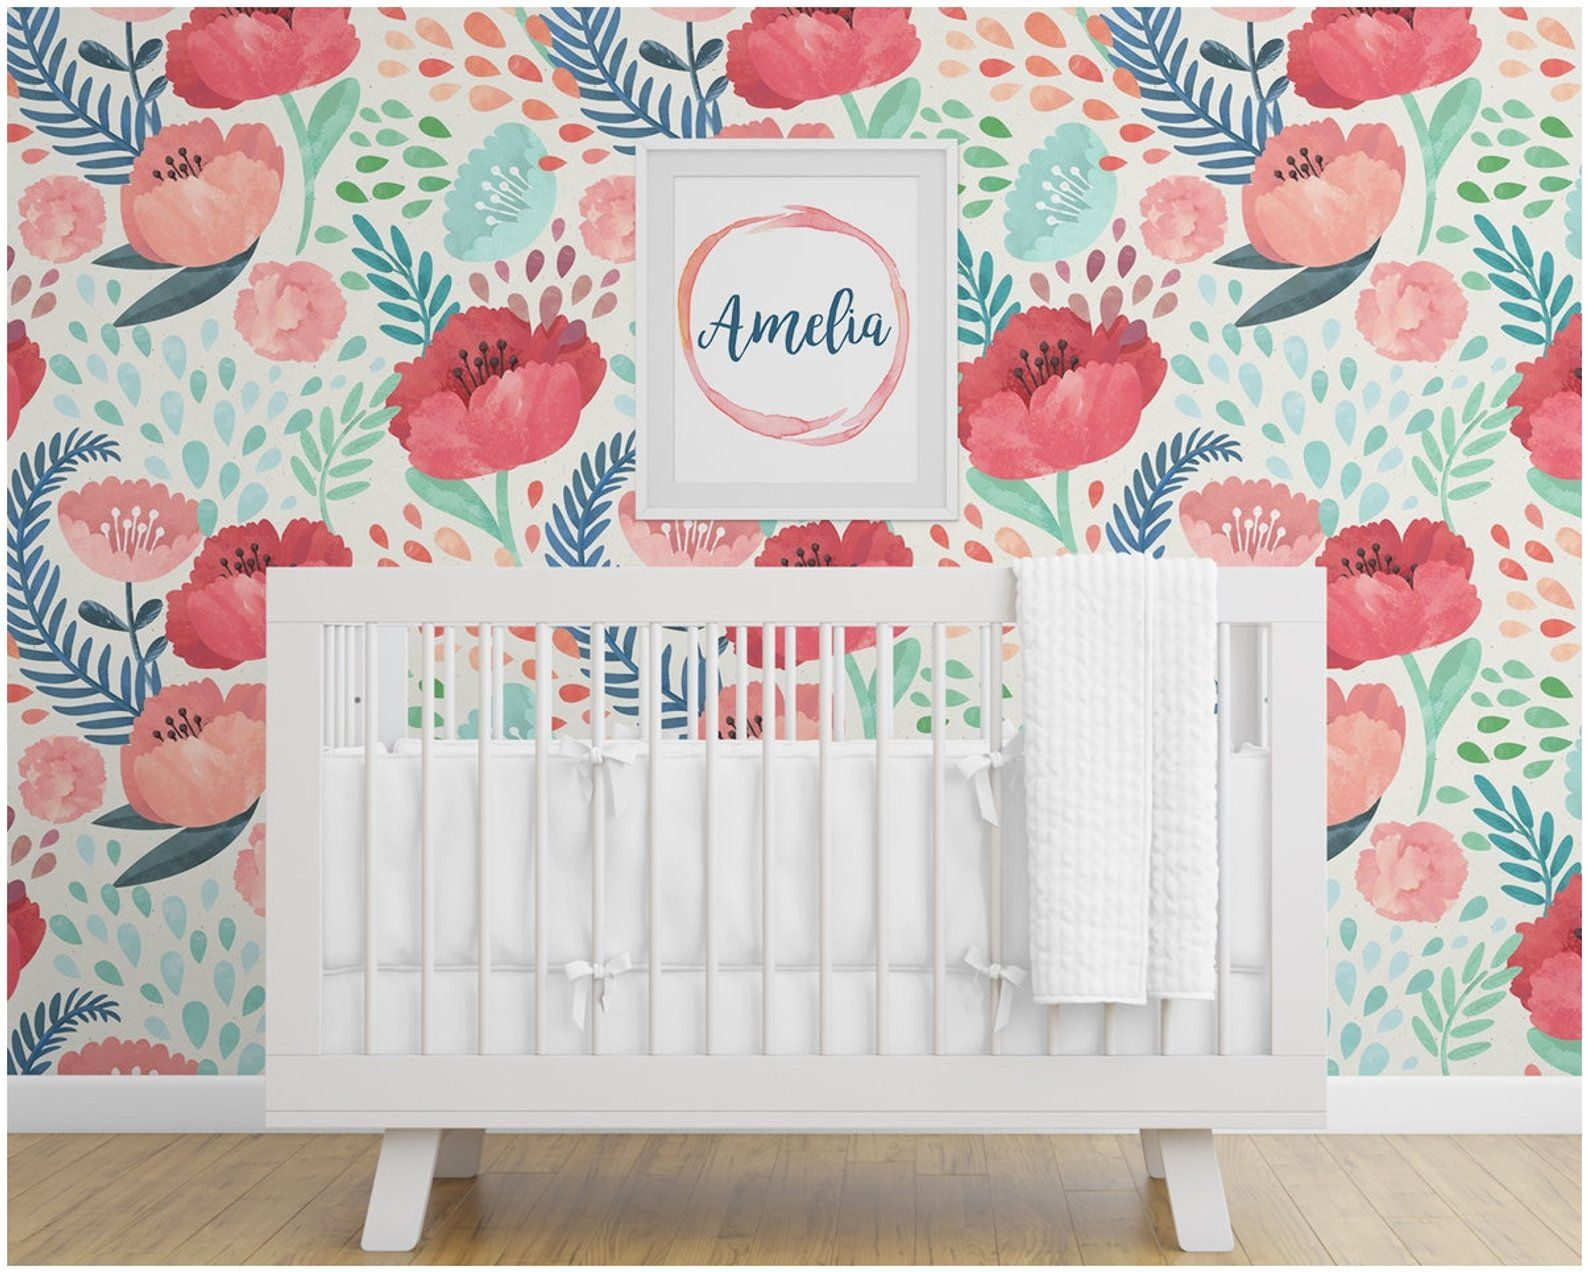 Nursery Wallpaper, Peel and Stick, Removable, Floral